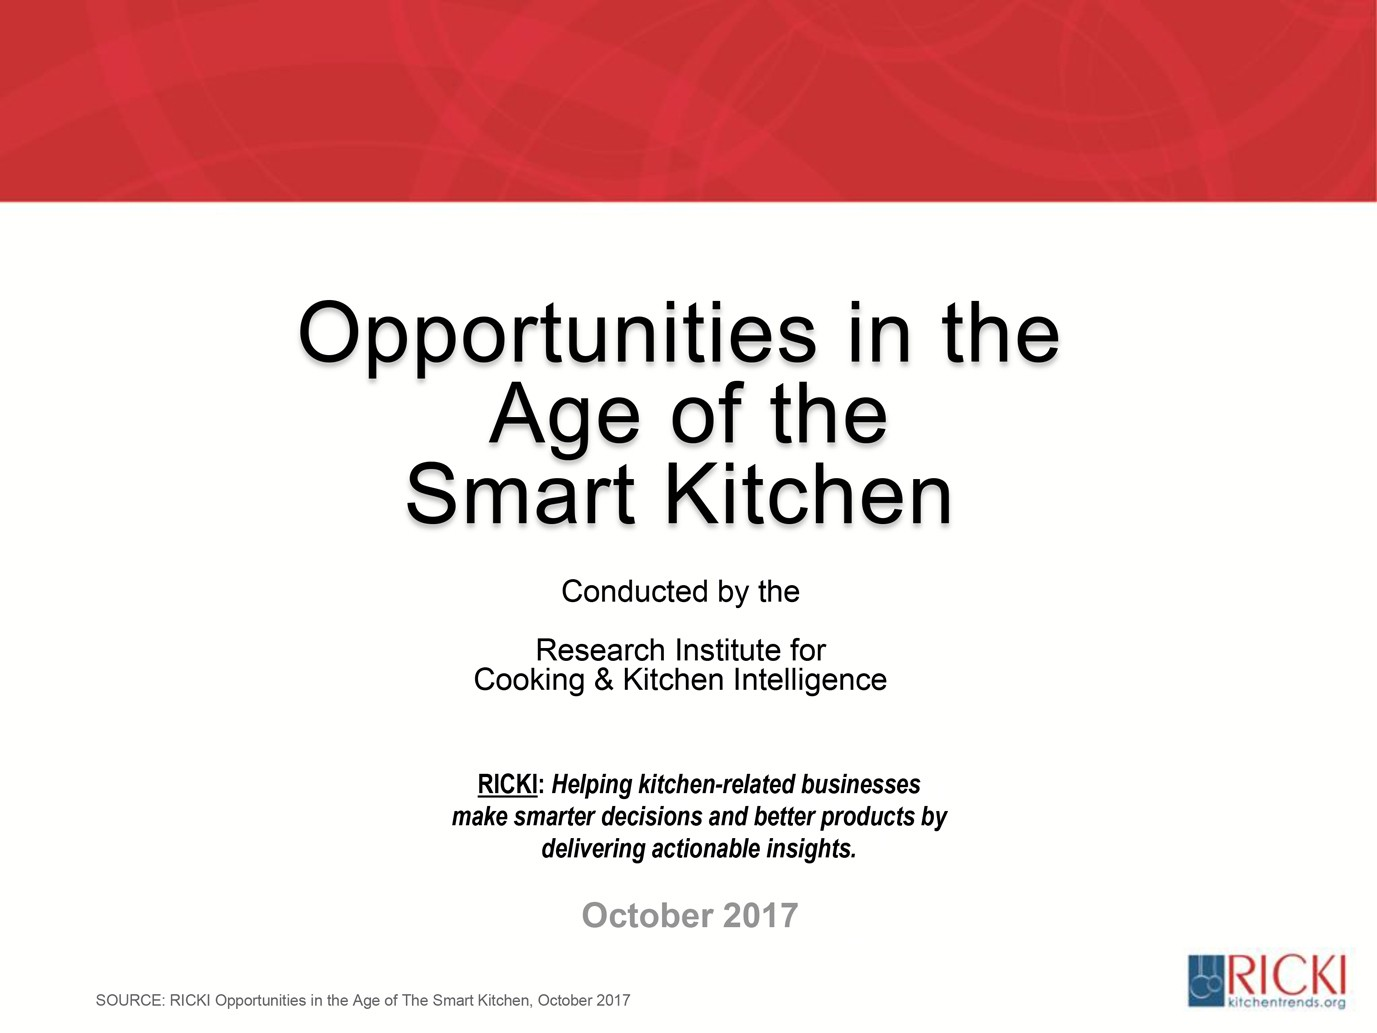 Opportunities in the Age of the Smart Kitchen